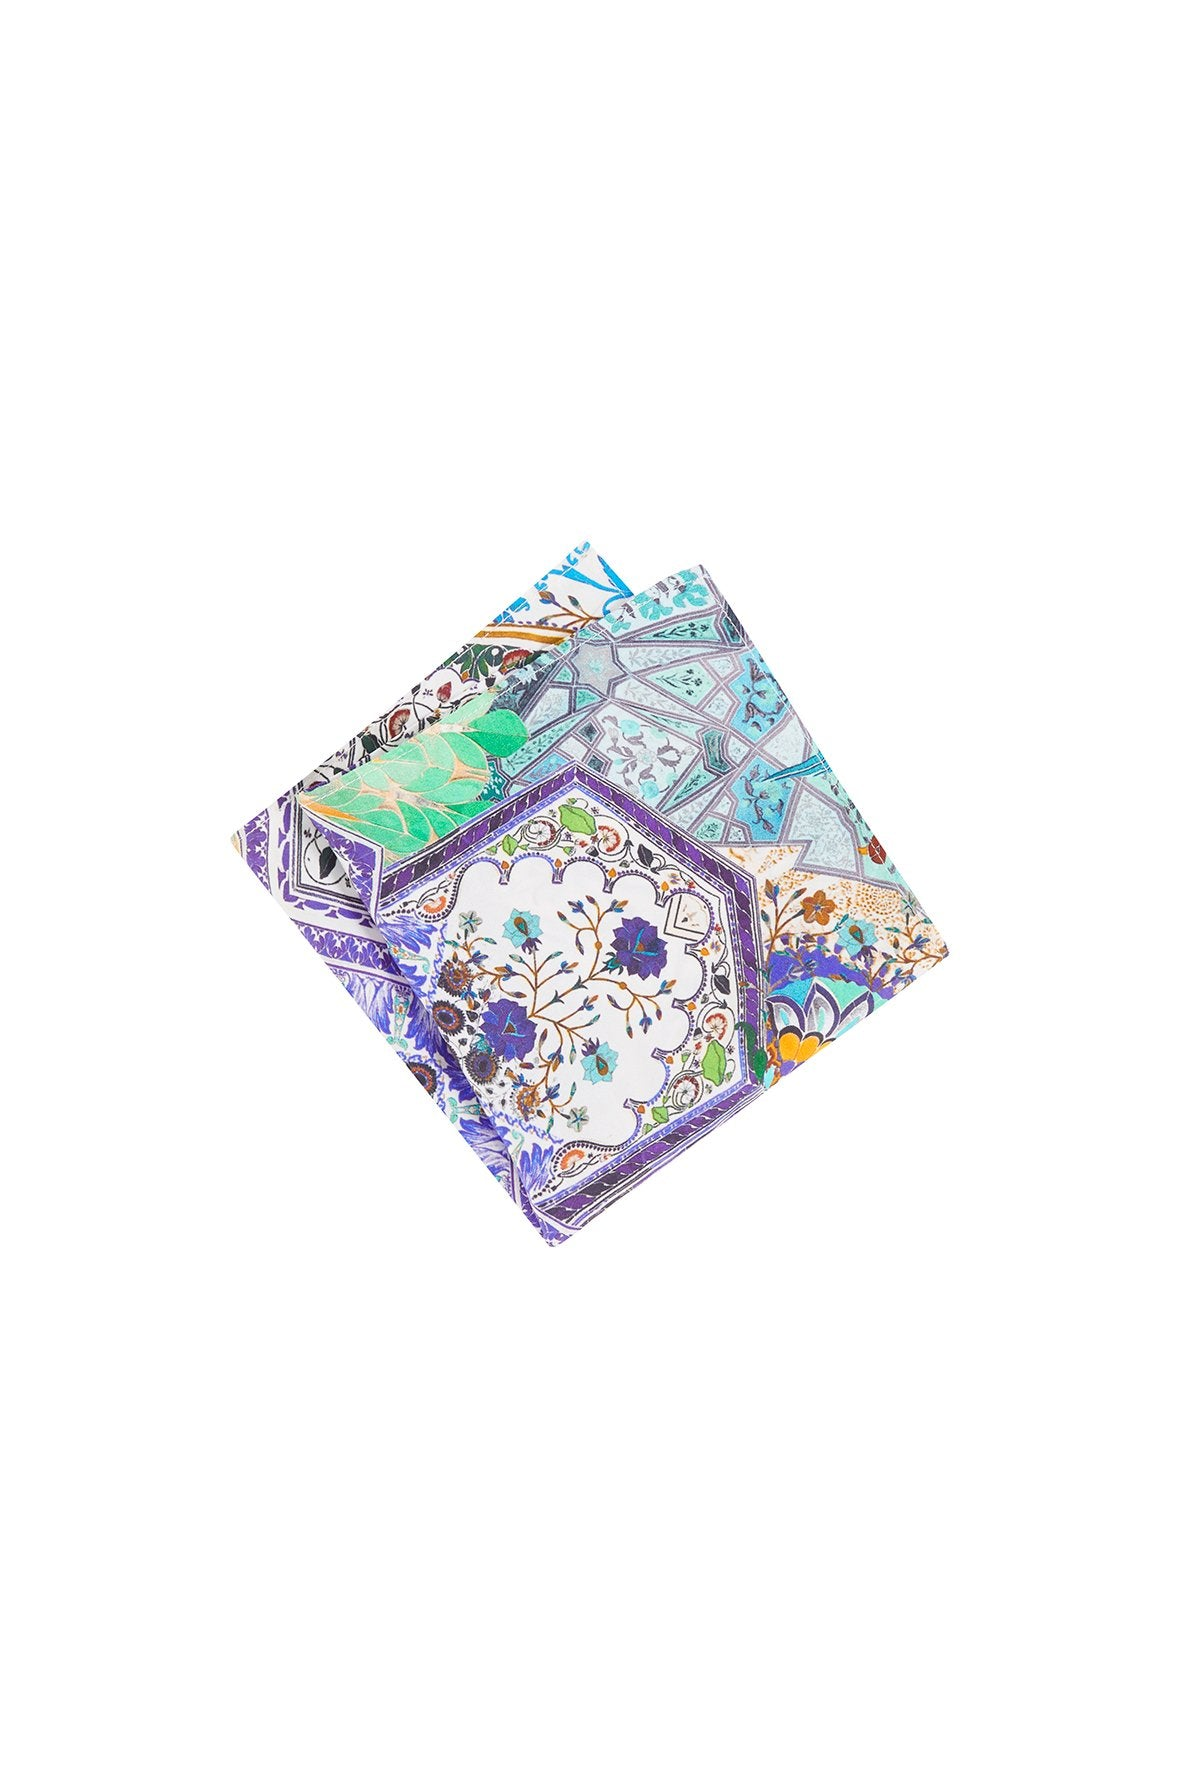 EVERLASTING UDAIPUR MENS POCKET SQUARE